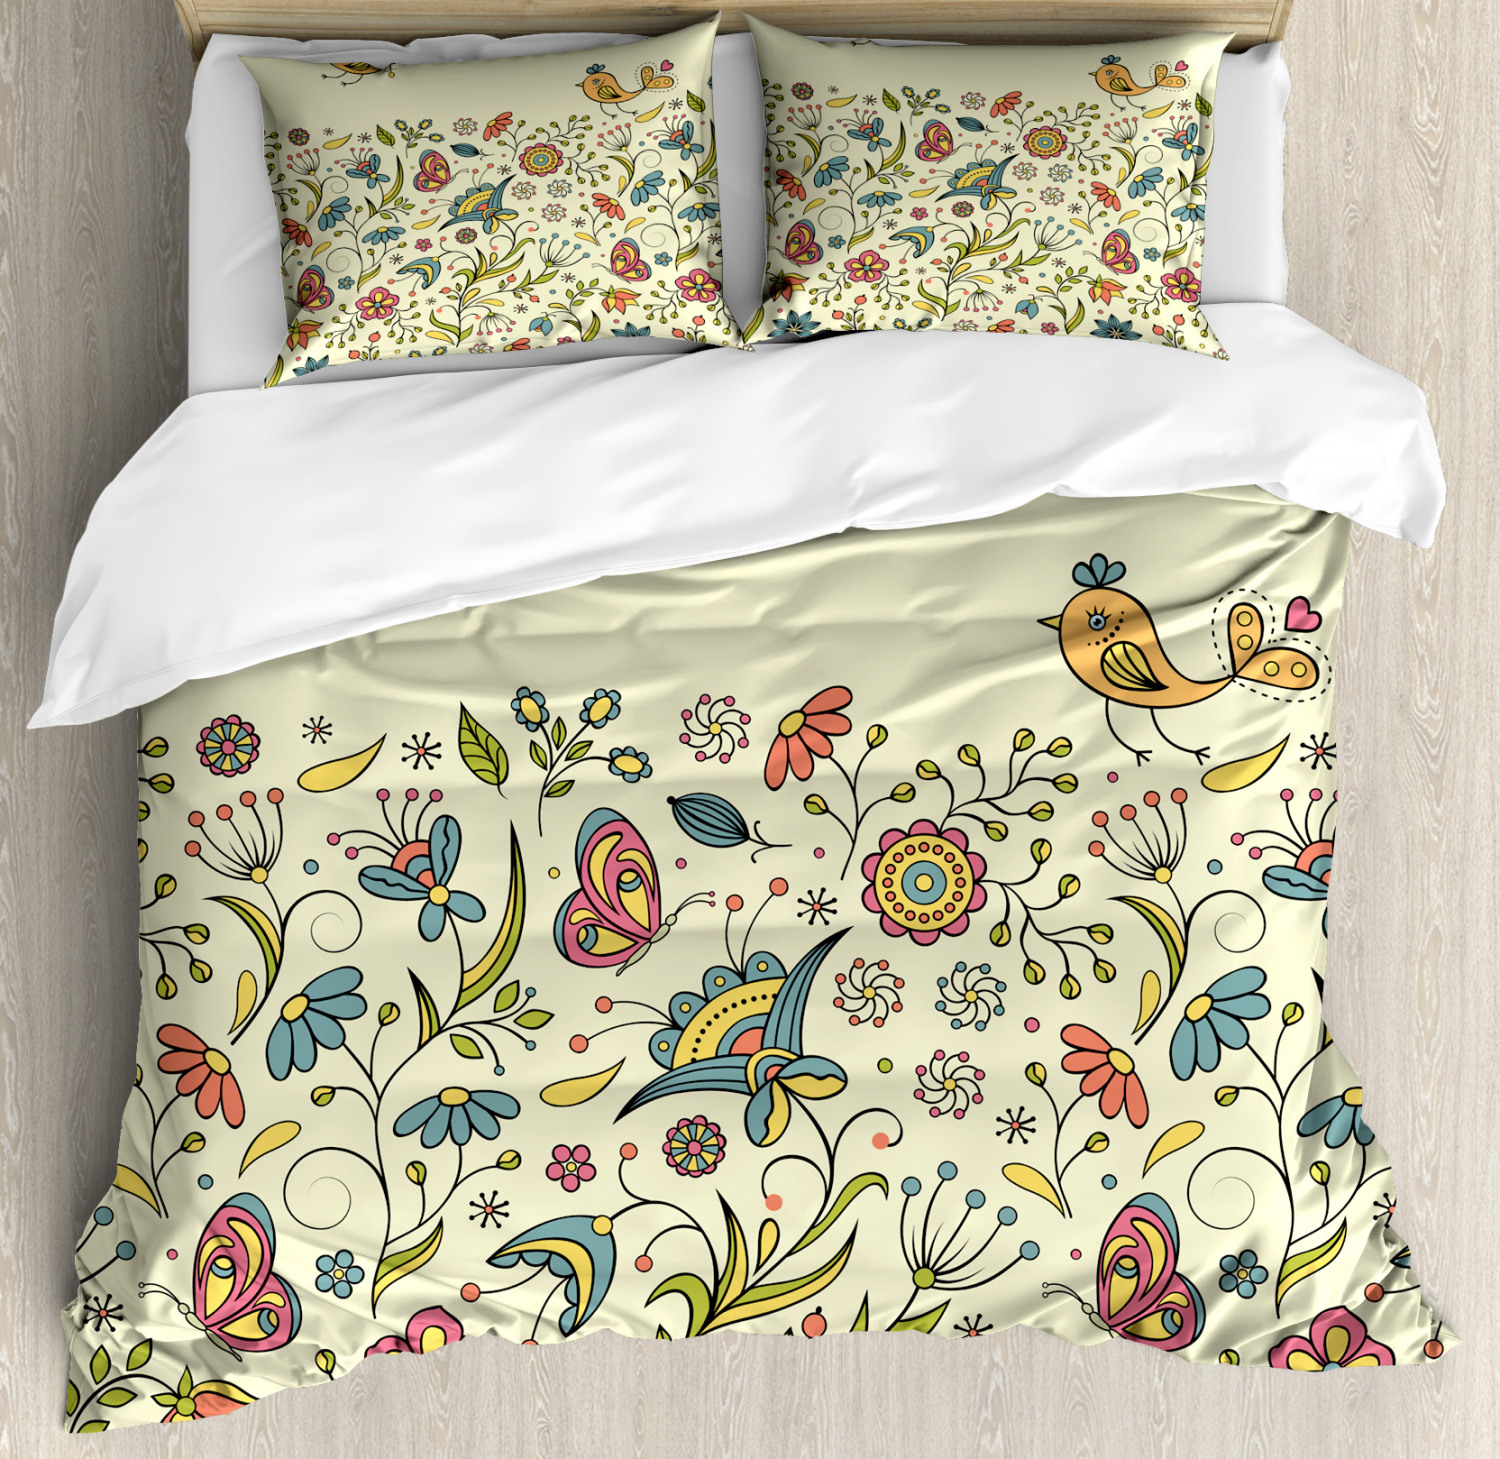 floral duvet cover set twin queen king sizes with pillow shams bedding decor ebay. Black Bedroom Furniture Sets. Home Design Ideas